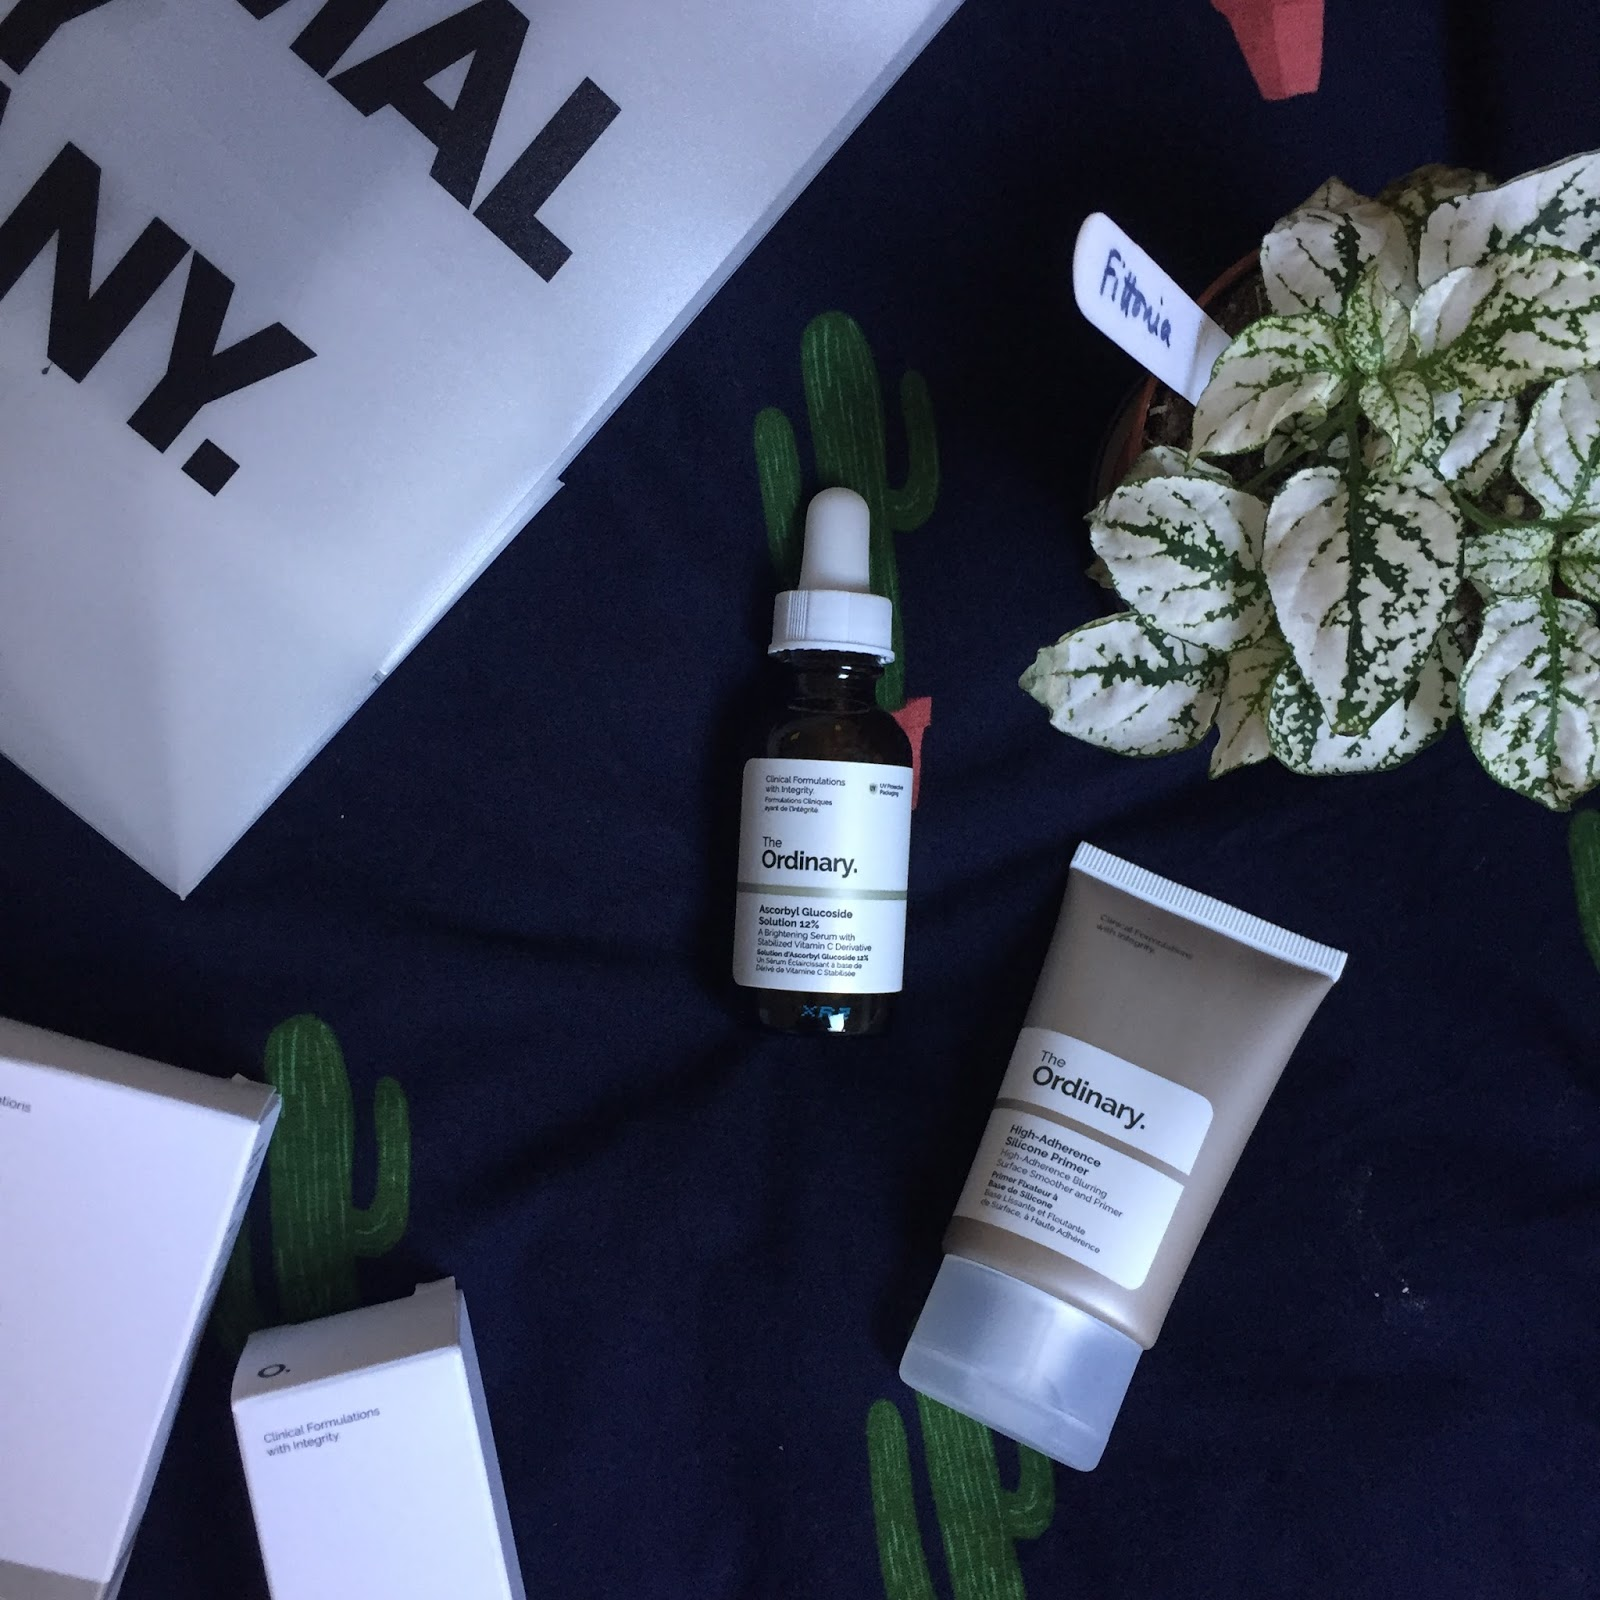 The Ordinary ascorbyl glucoside solution 12% and high adherence silicon primer